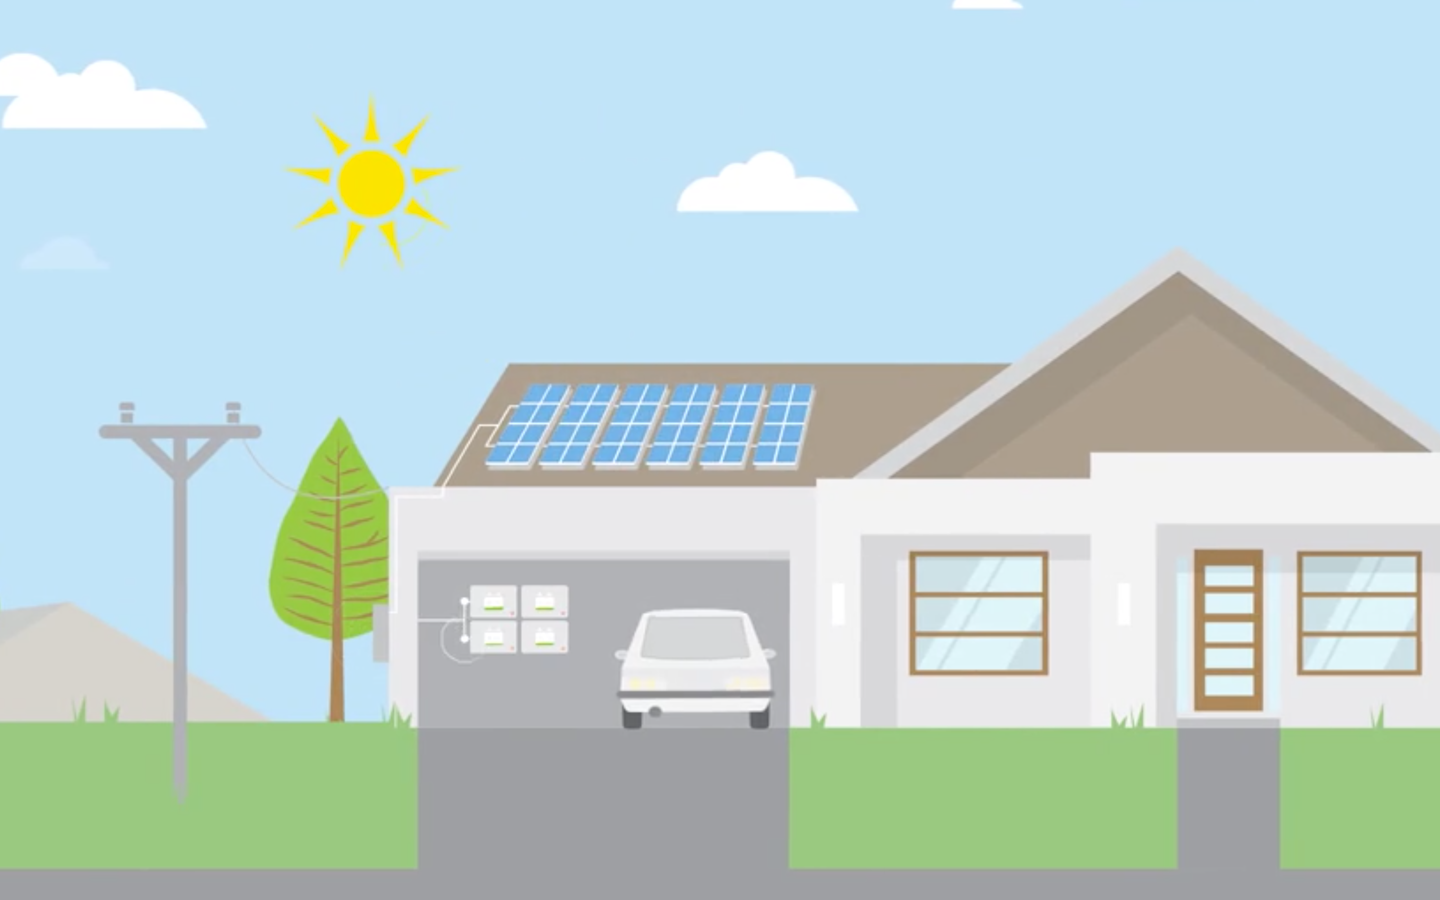 The Enphase Home Energy Solution - video still of house